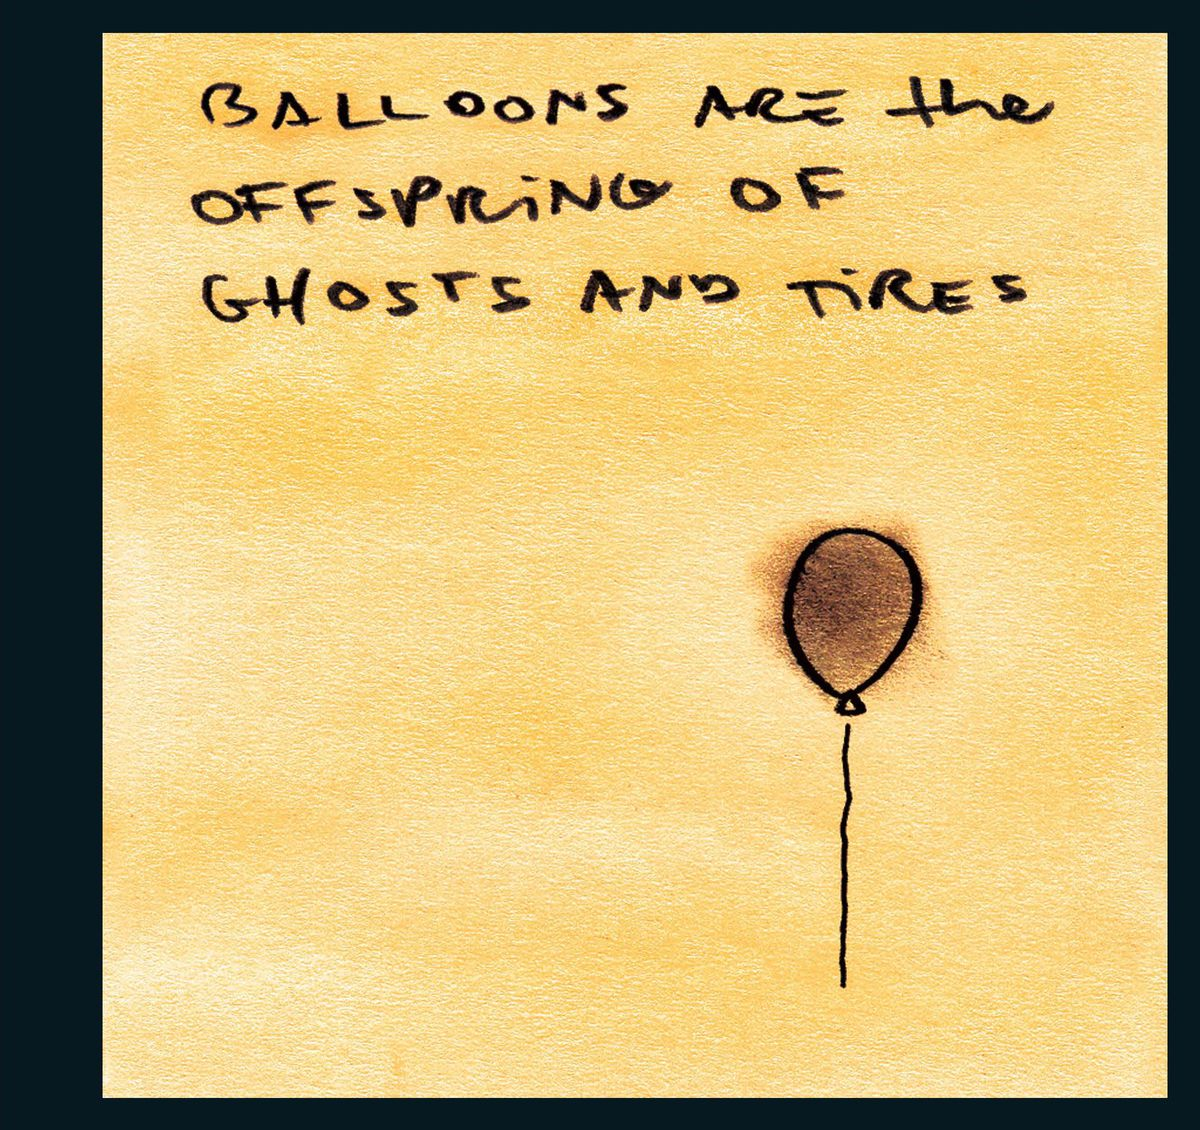 """An image of a balloon with the text """"Balloons Are the Offspring of Ghosts and Tires"""""""